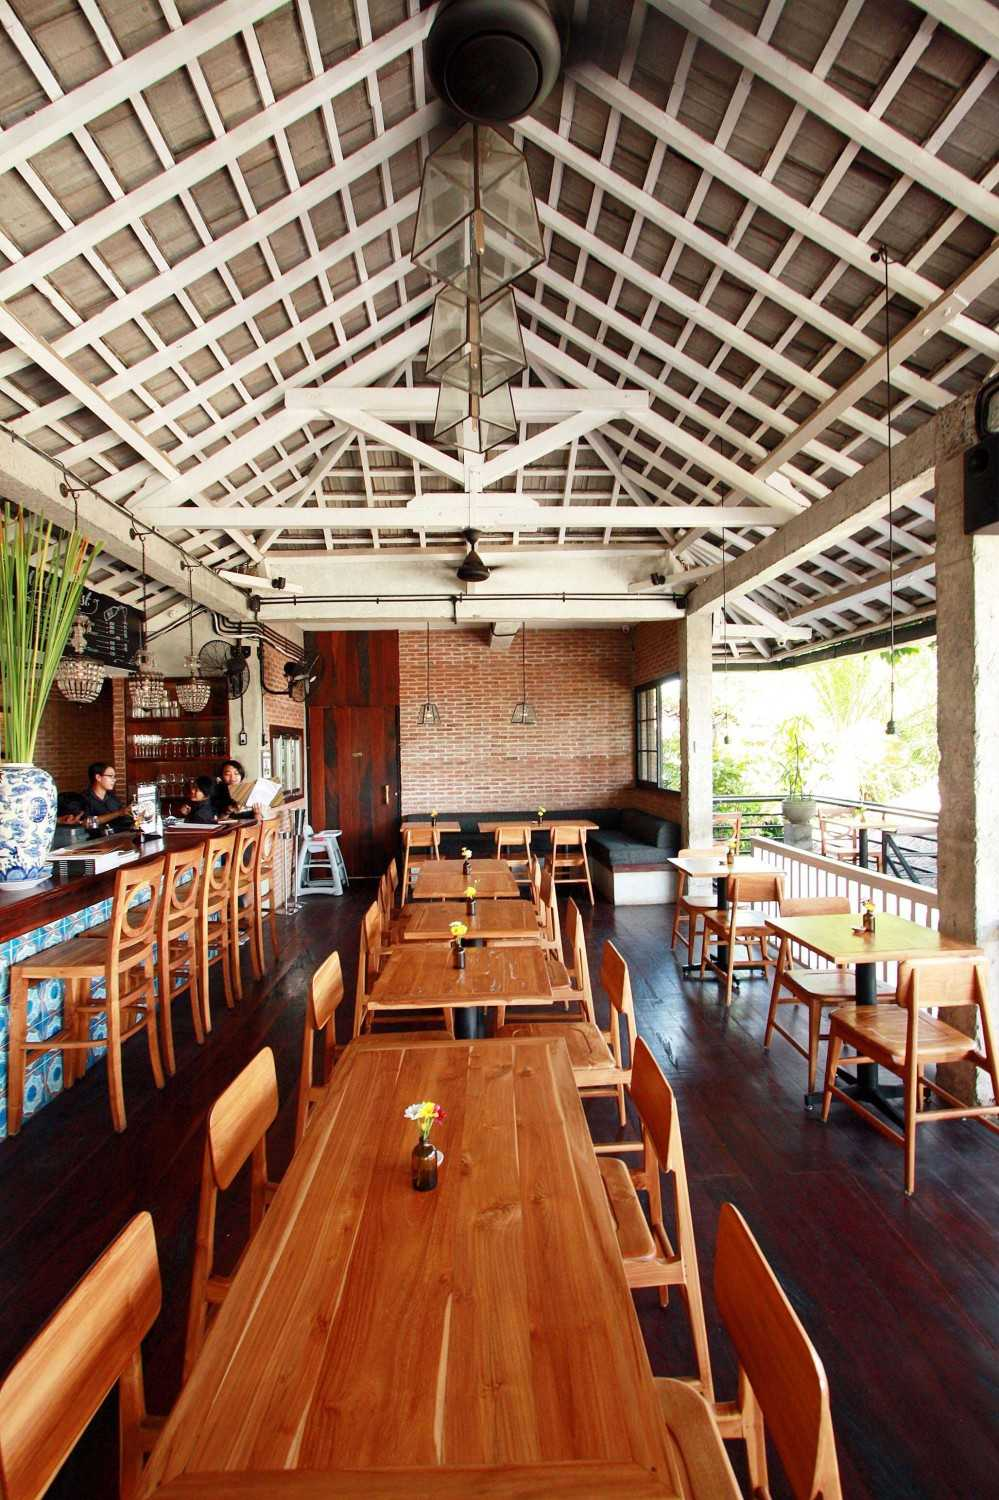 Ddap Architect Watercress Cafe At Ubud Ubud, Kabupaten Gianyar, Bali, Indonesia Bali, Indonesia 1St-Floor-Dining-Area Industrial 10486